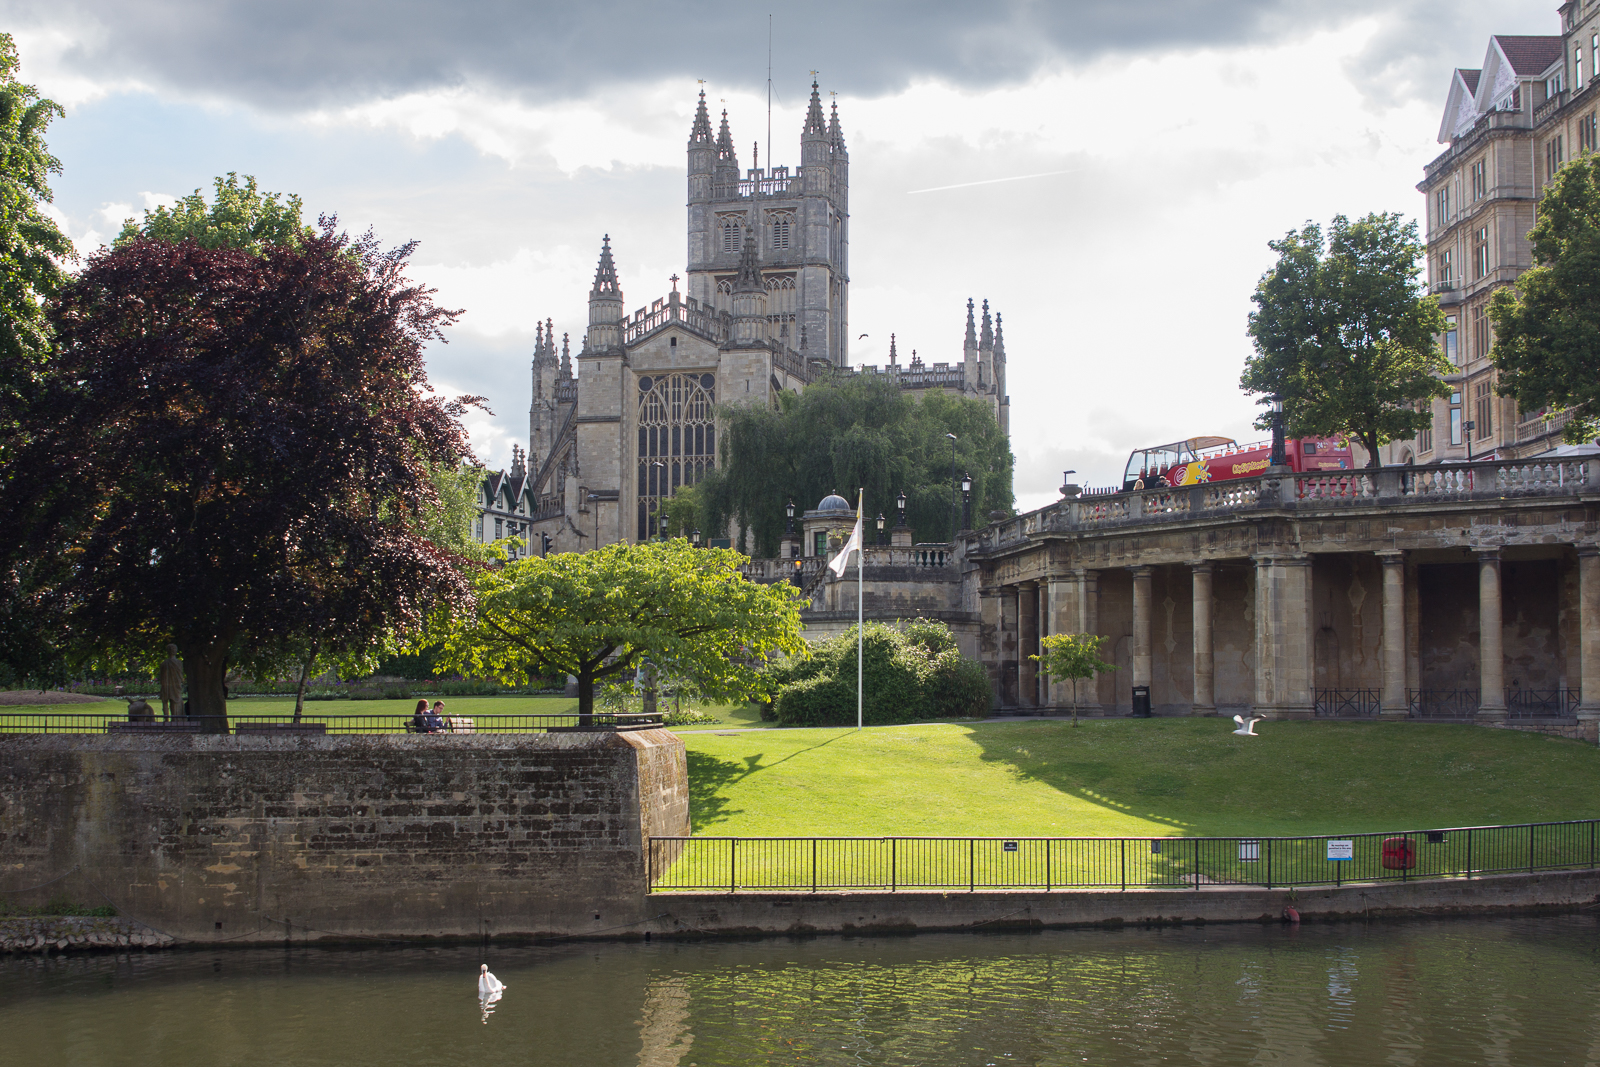 Bath Abbey across the River Avon